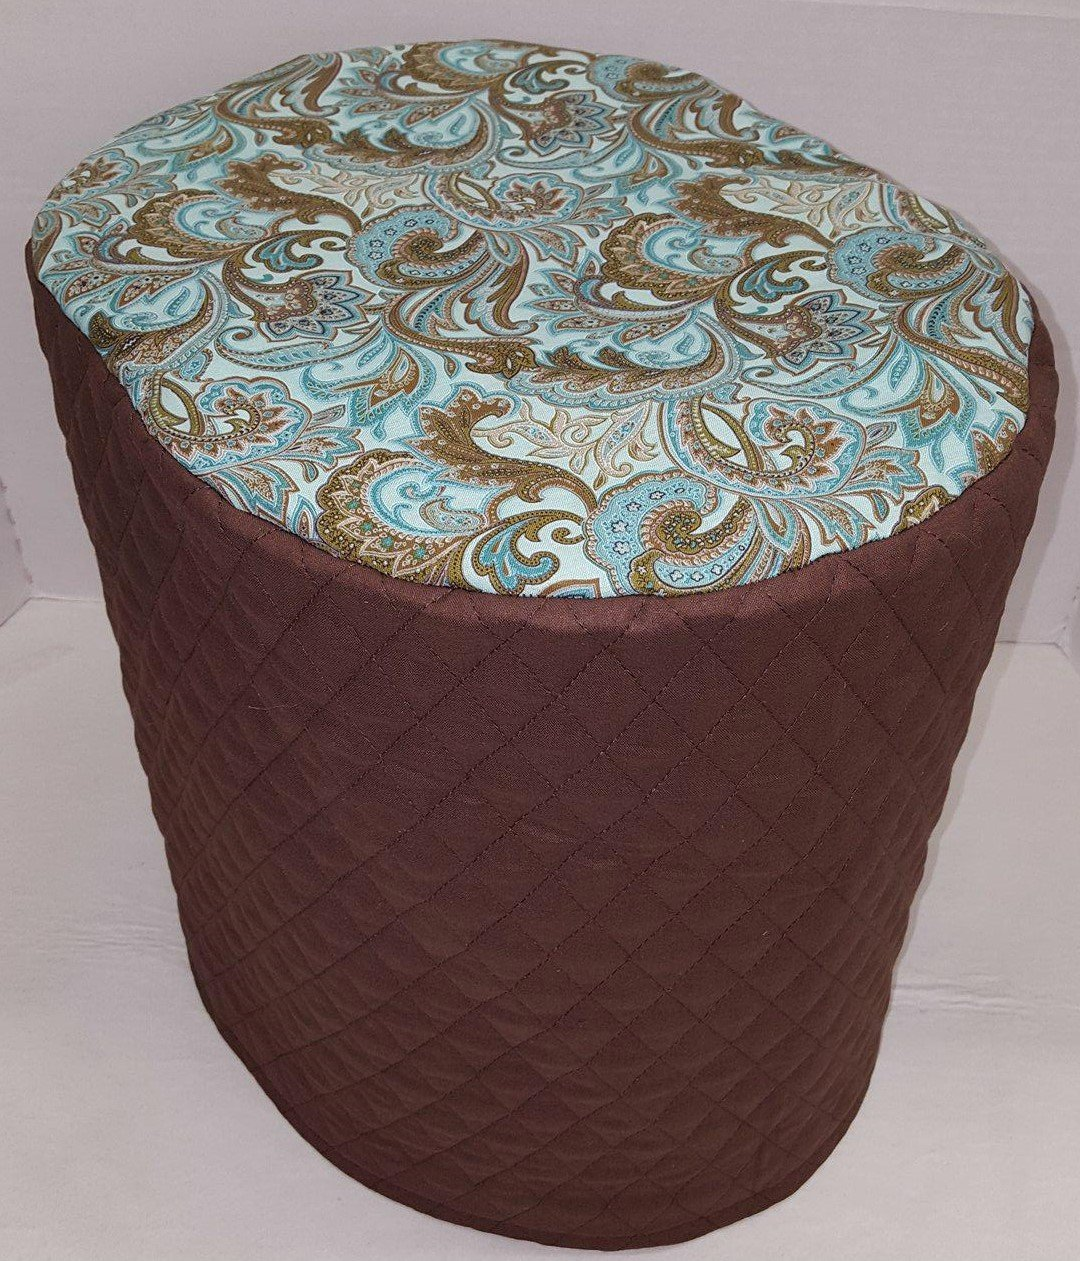 Brown & Teal Paisley Food Processor Cover (Chocolate Brown, Large)